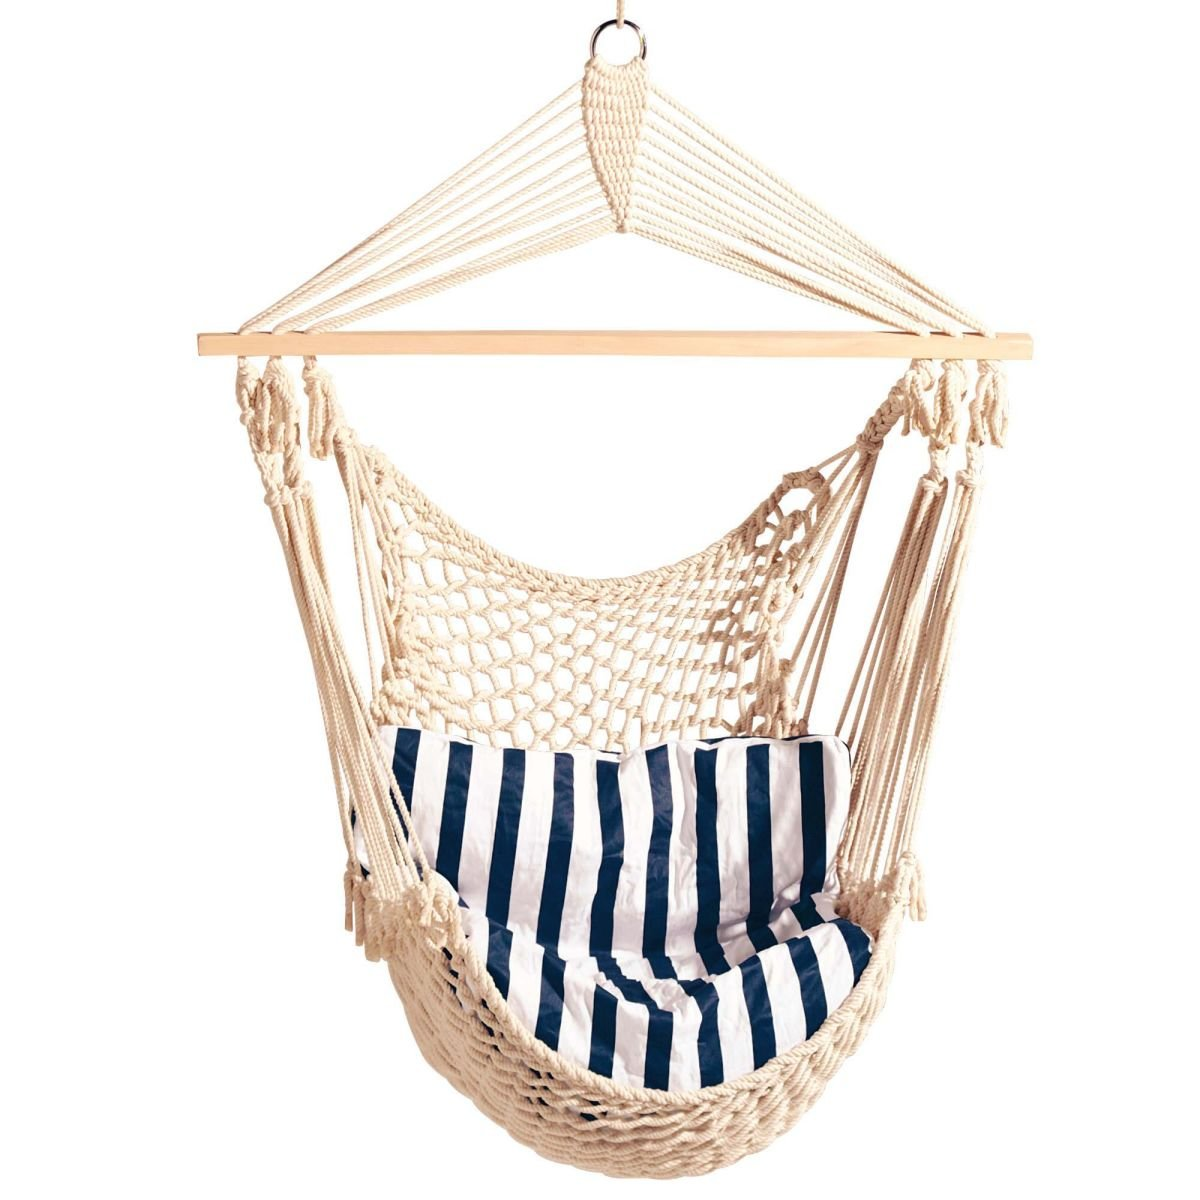 Brasil Hanging Chair Blue and White Stripes PureDay